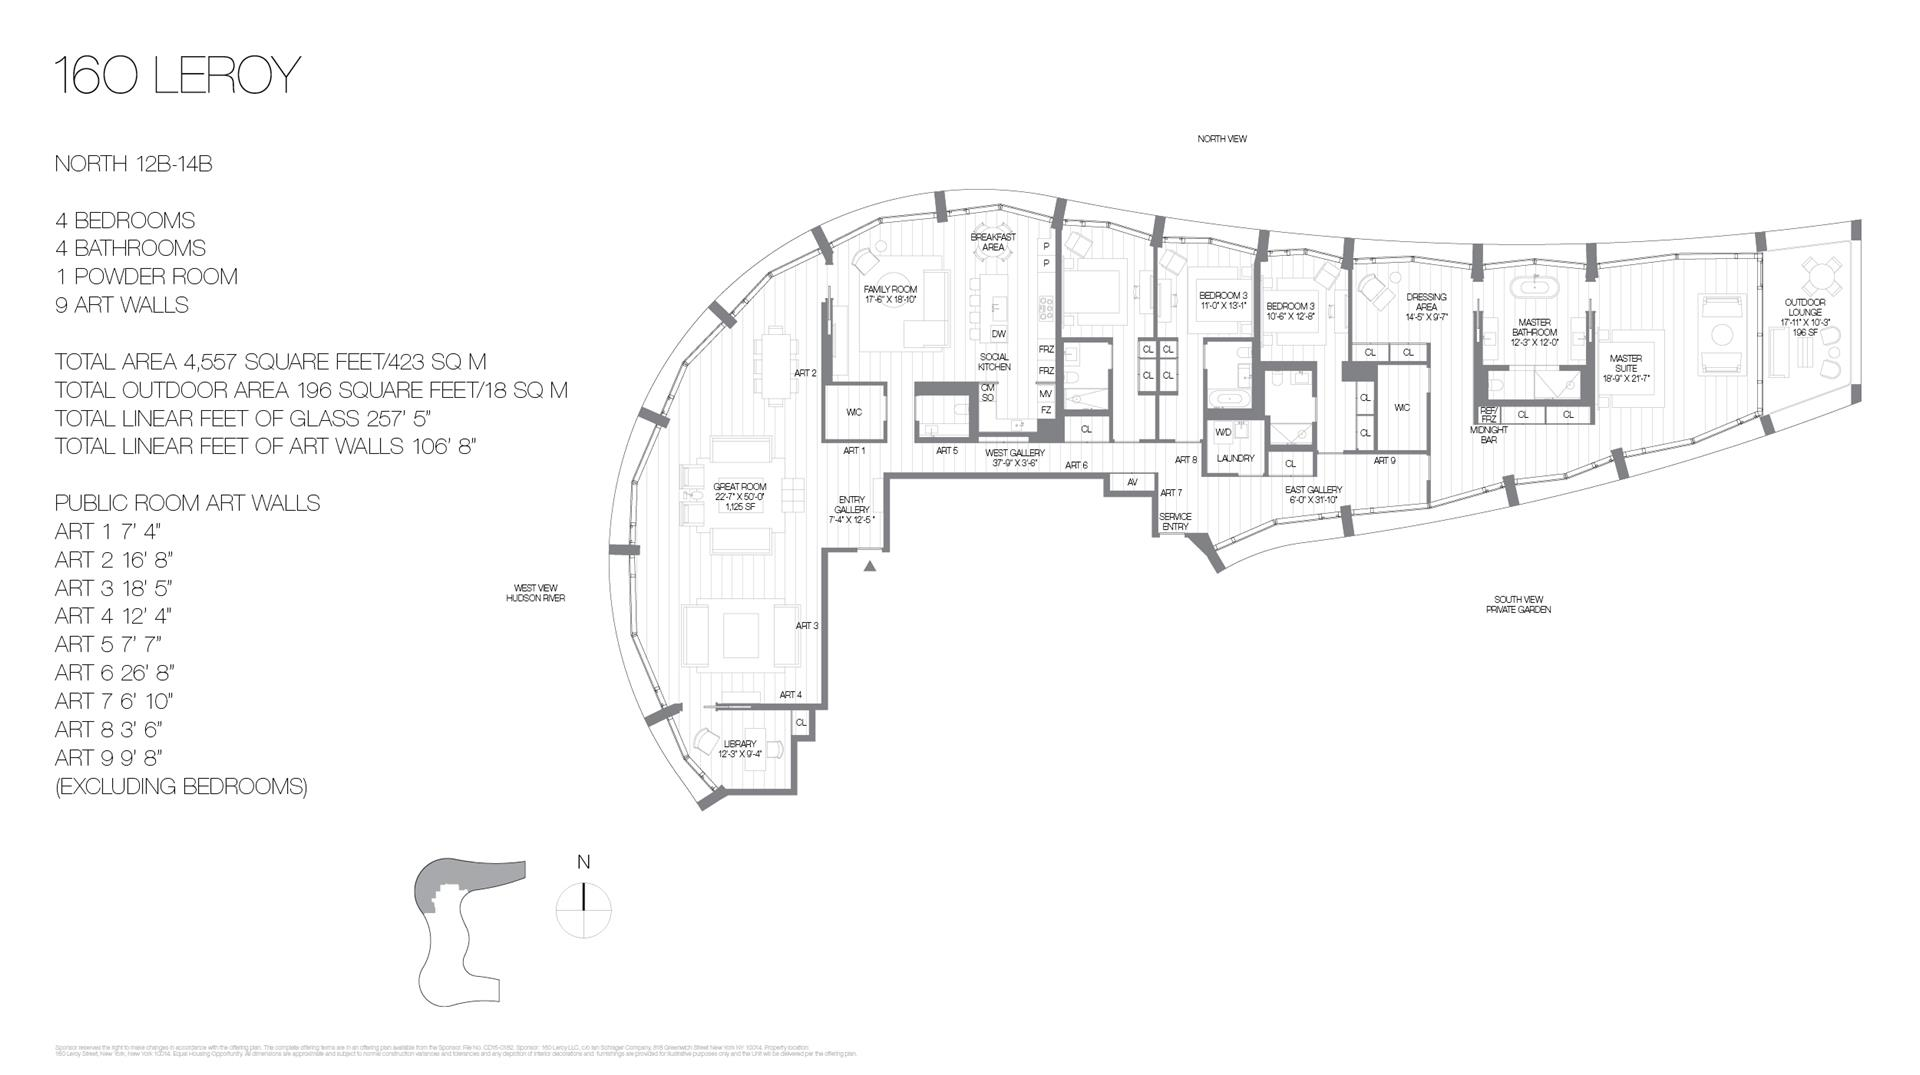 Floor plan of 160 Leroy St, NORTH12B - West Village - Meatpacking District, New York